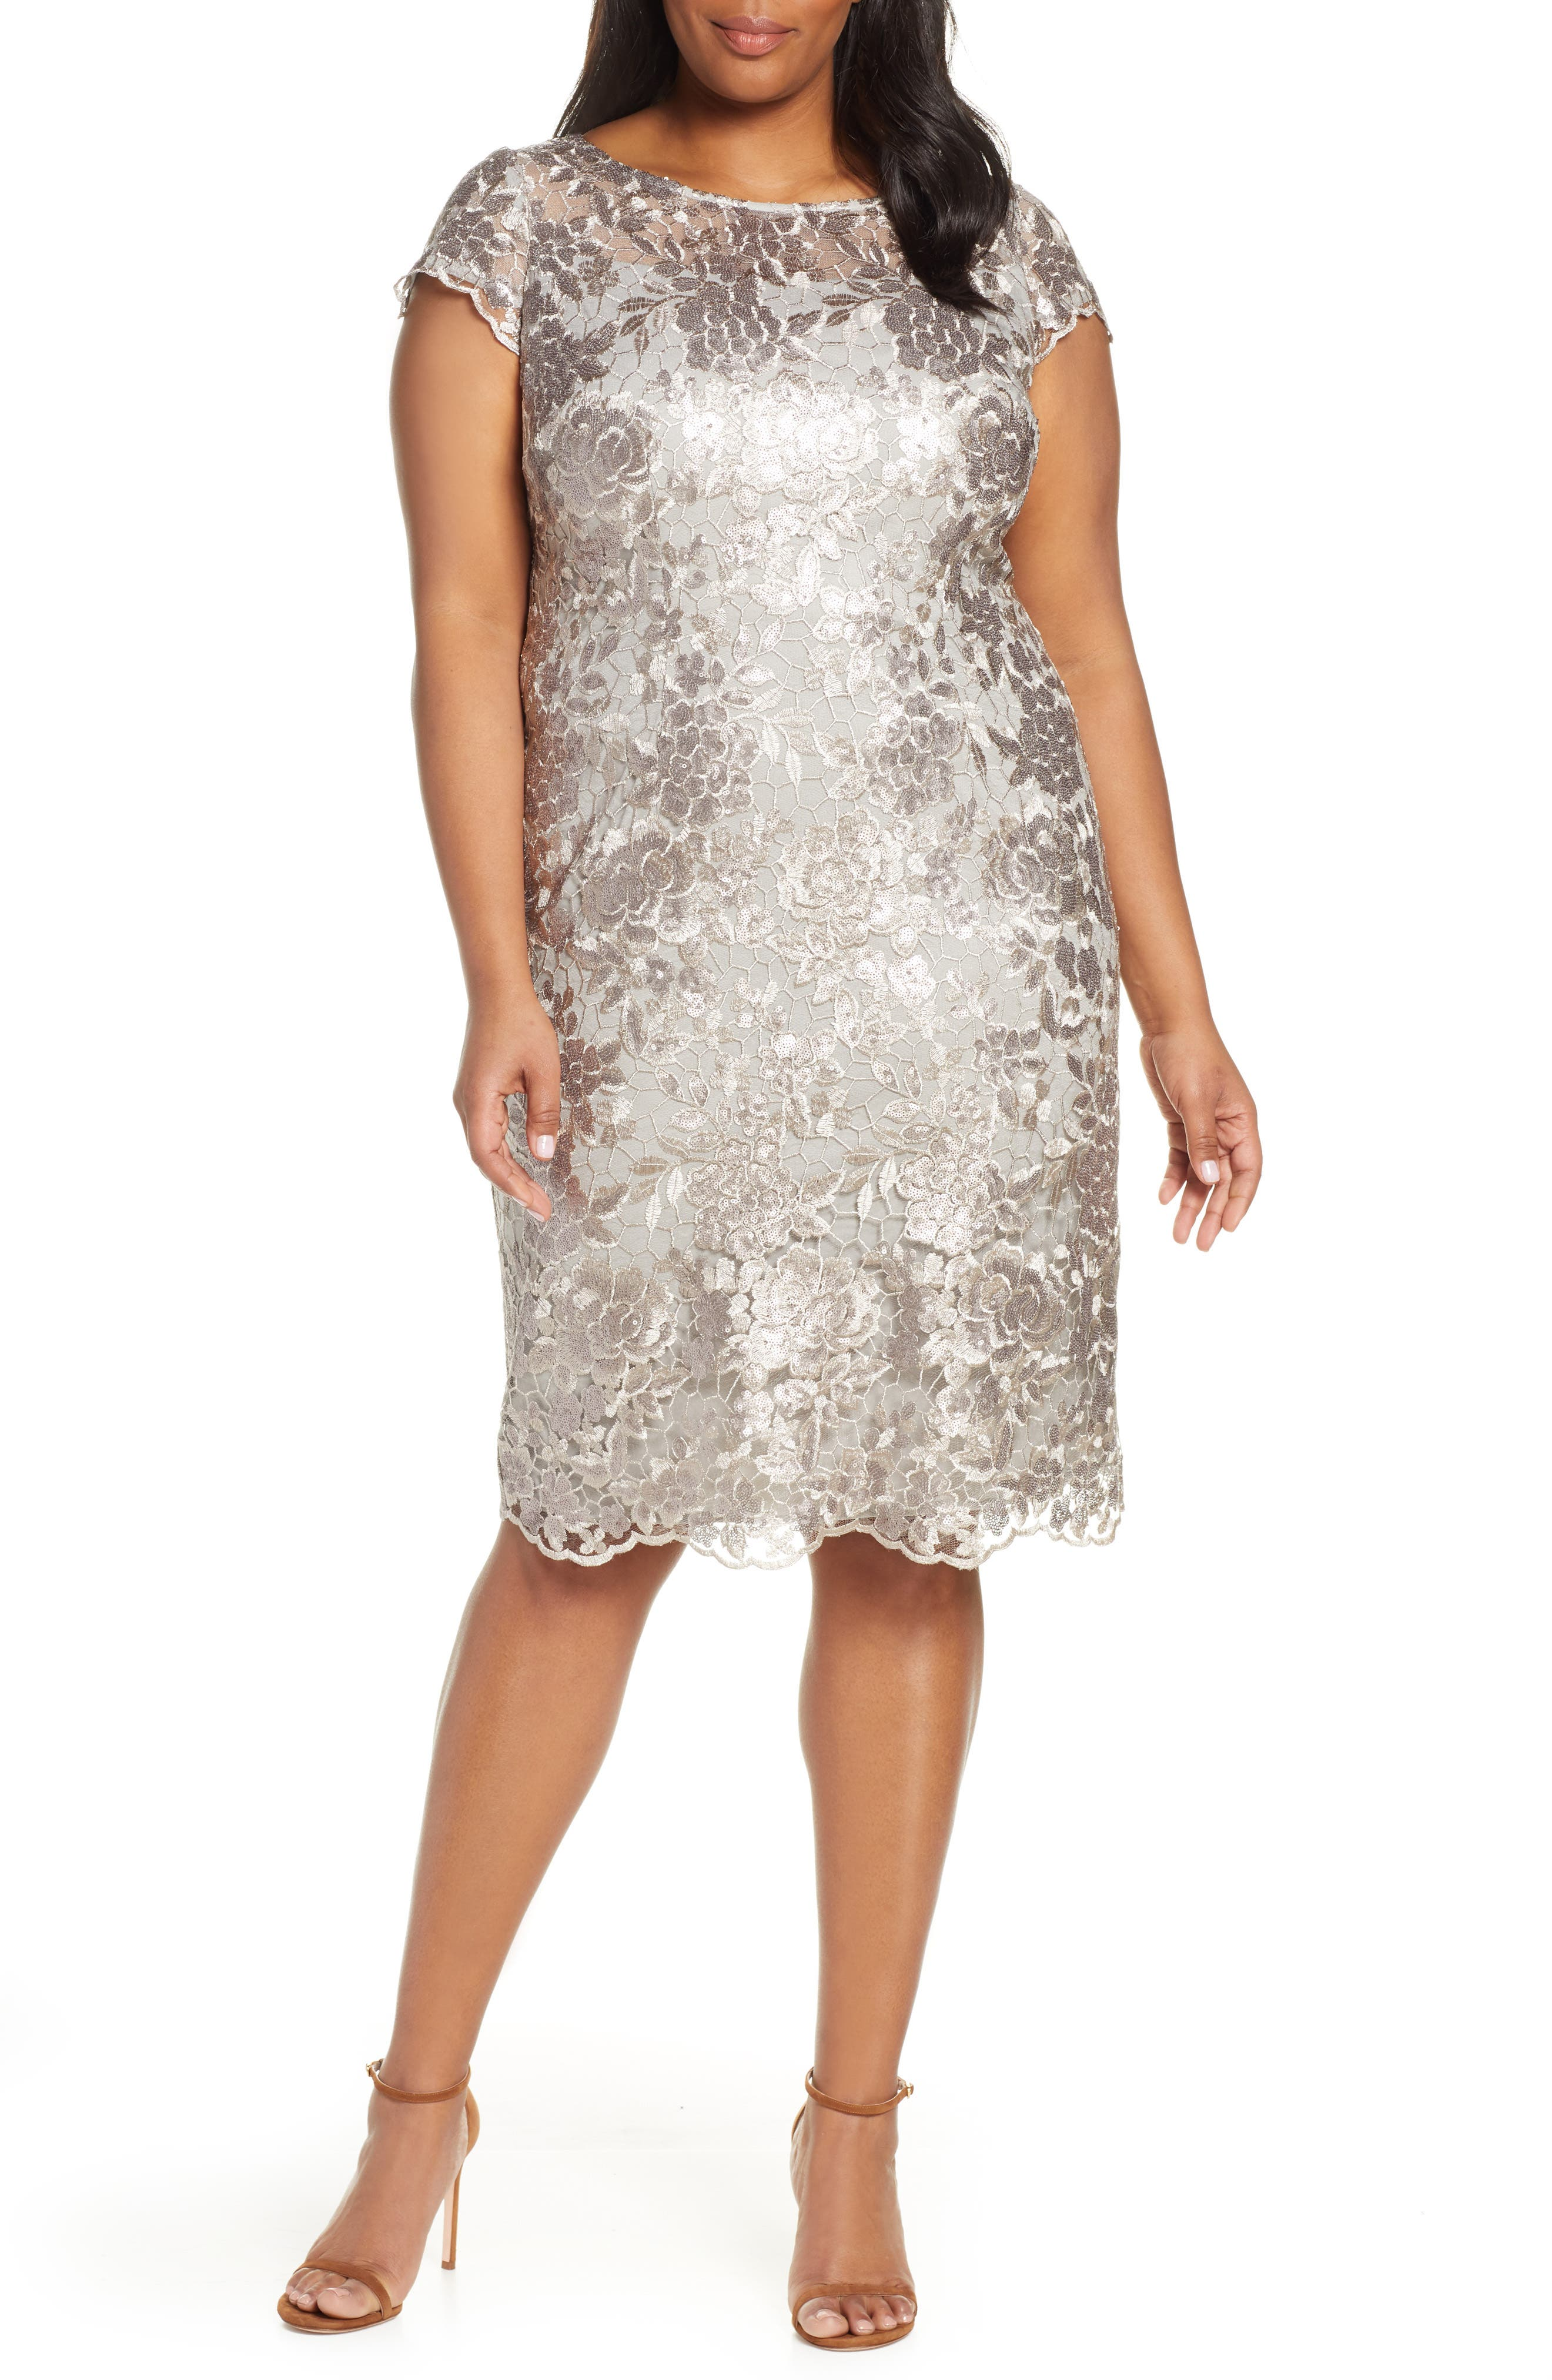 Plus Size Alex Evenings Cap Sleeve Sequin Embroidered Sheath Dress, Beige